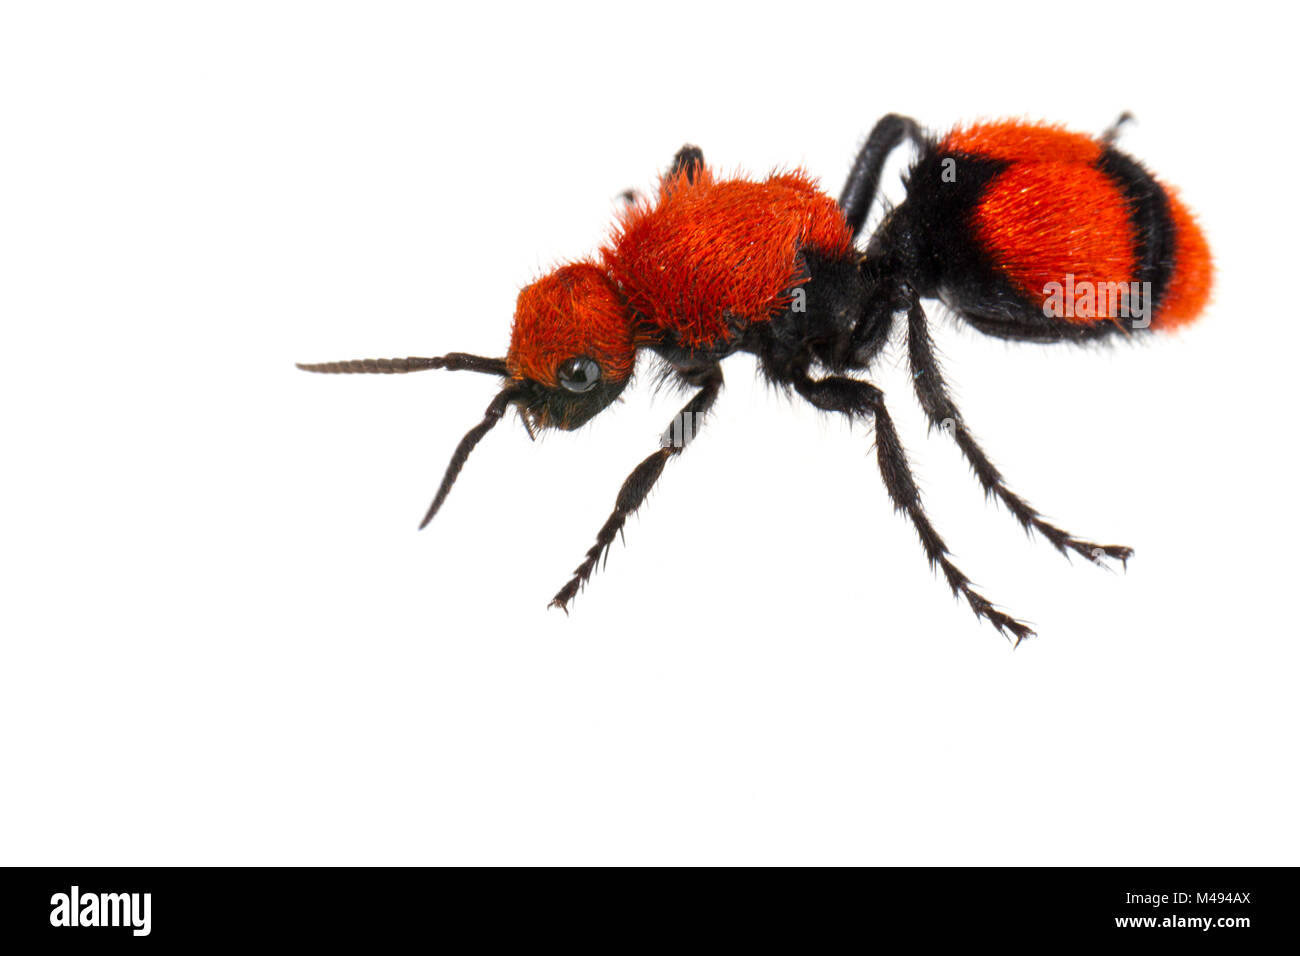 Cow killer velvet ant (Dasymutilla occidentalis) on white background, Tuscaloosa County, Alabama, USA September - Stock Image